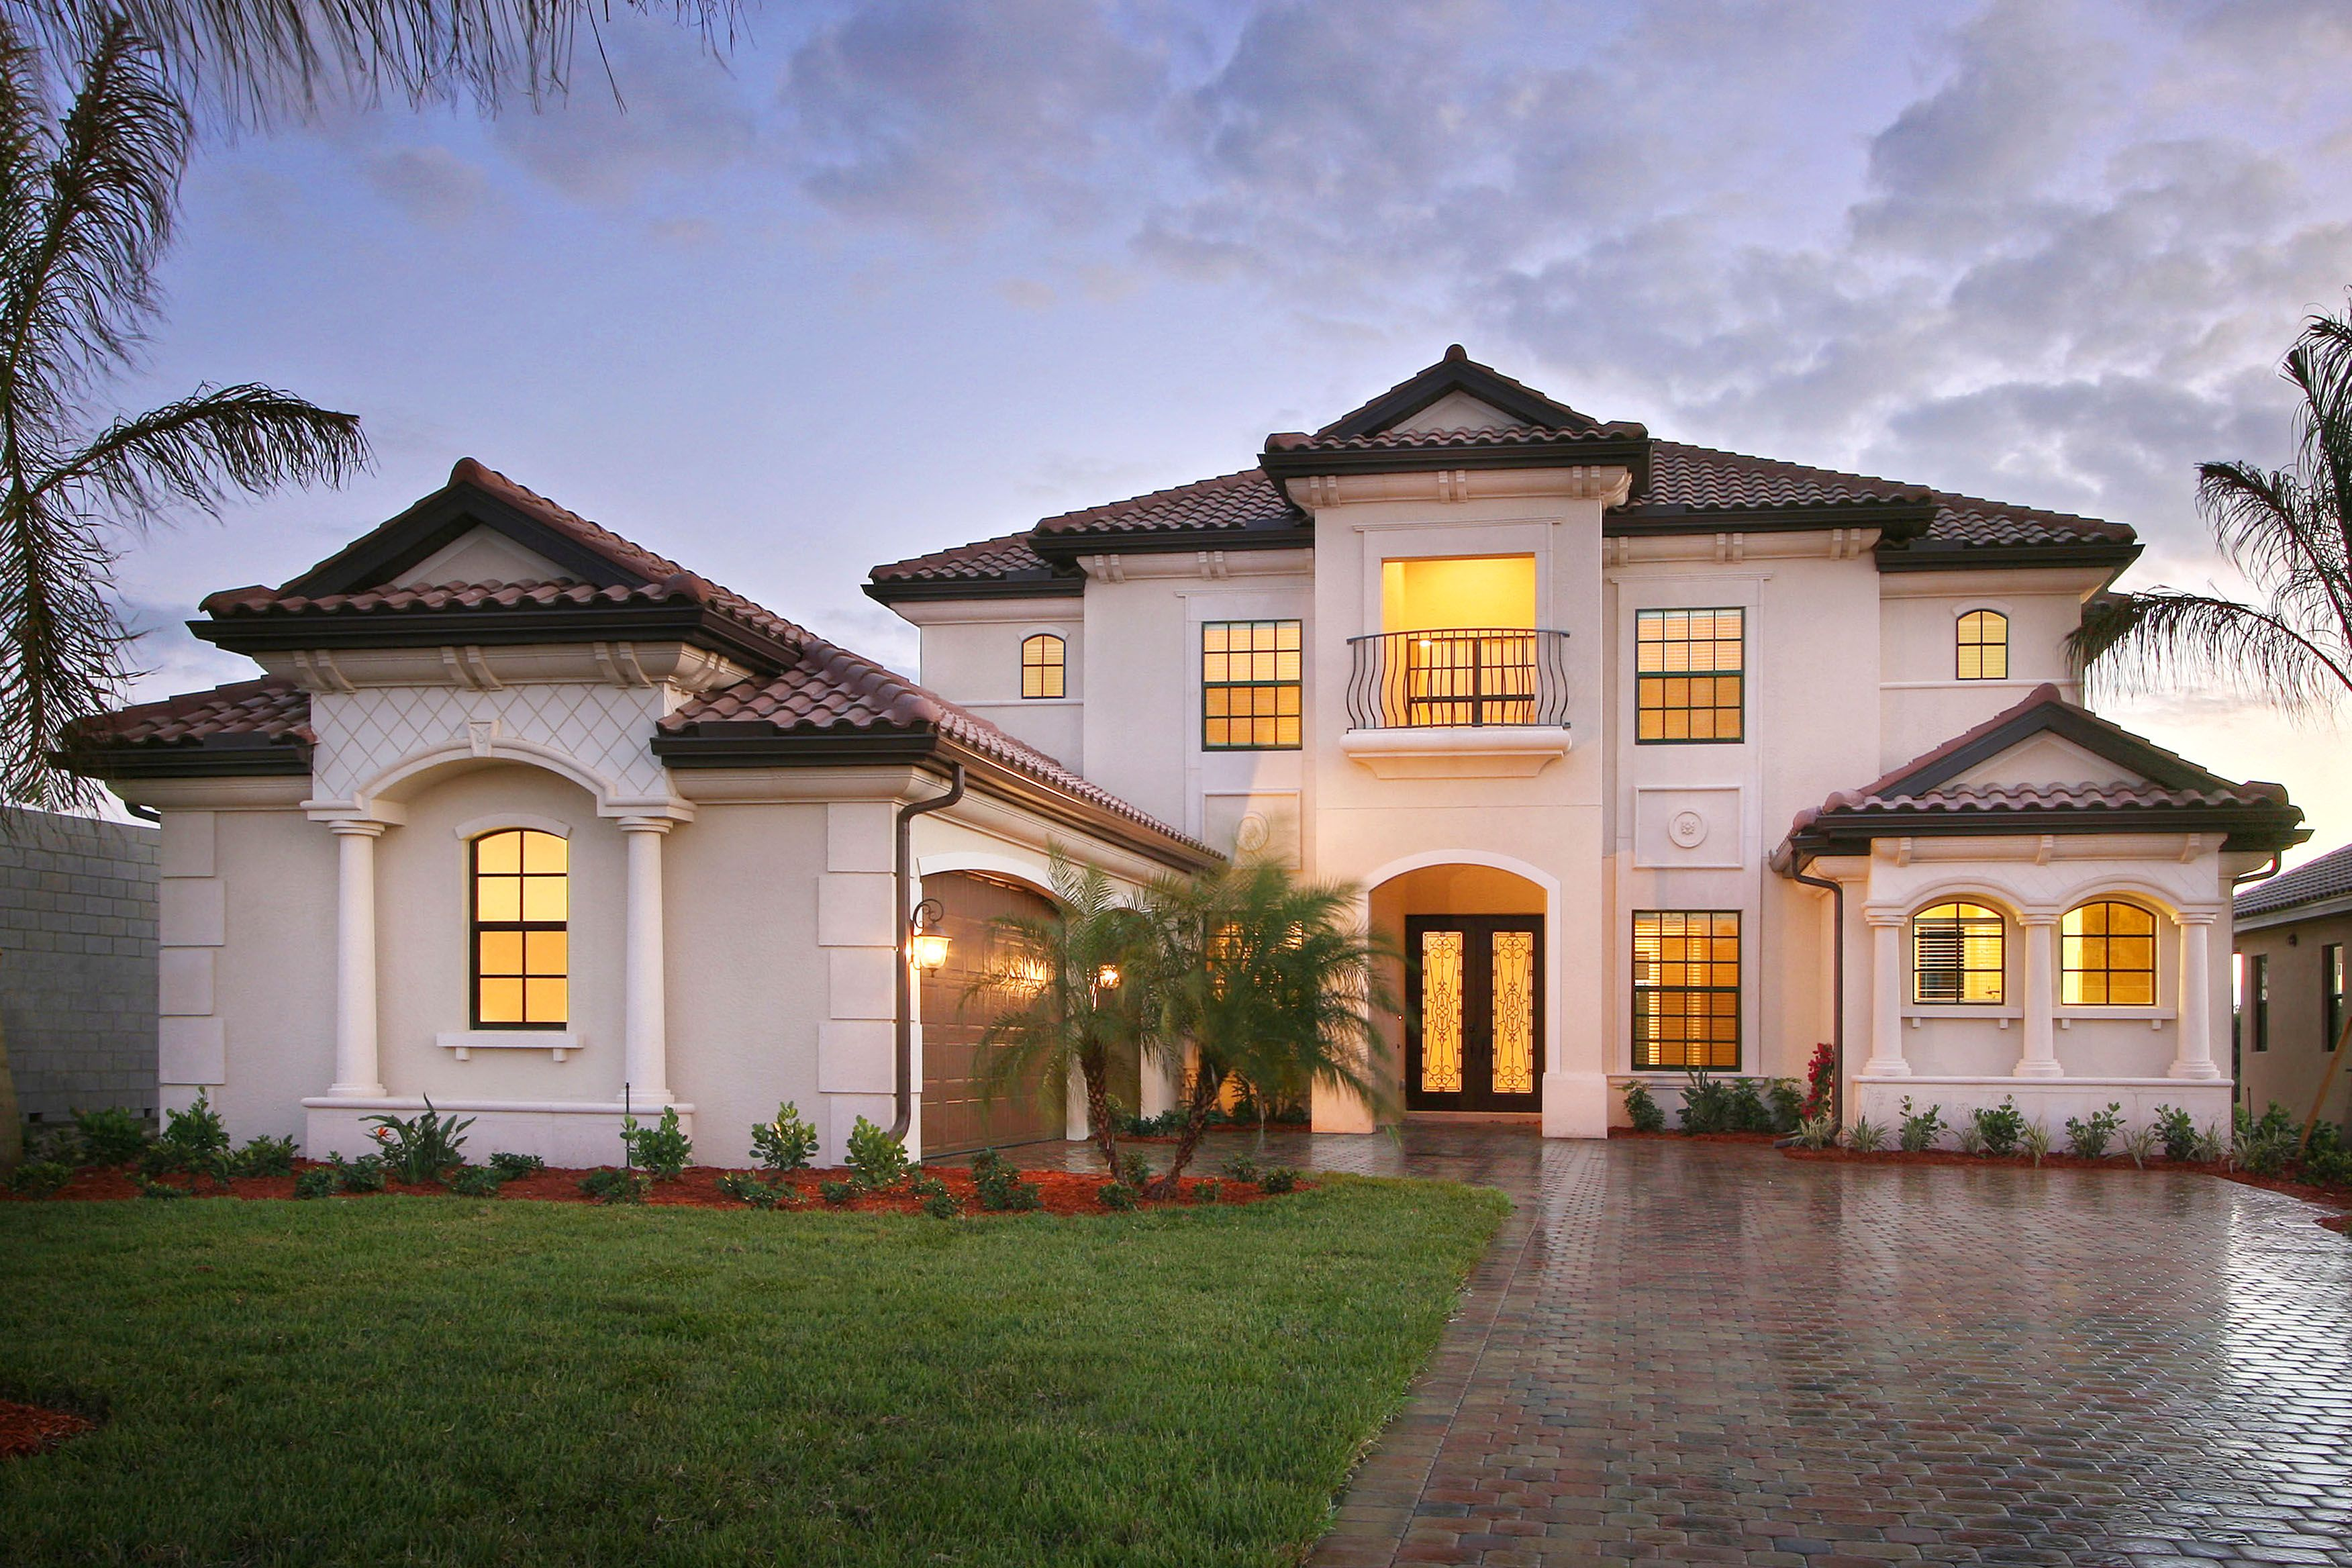 Which Would Prefer A One Story Home Or A Two Story Home Mediterranean Homes New Home Communities Estate Homes